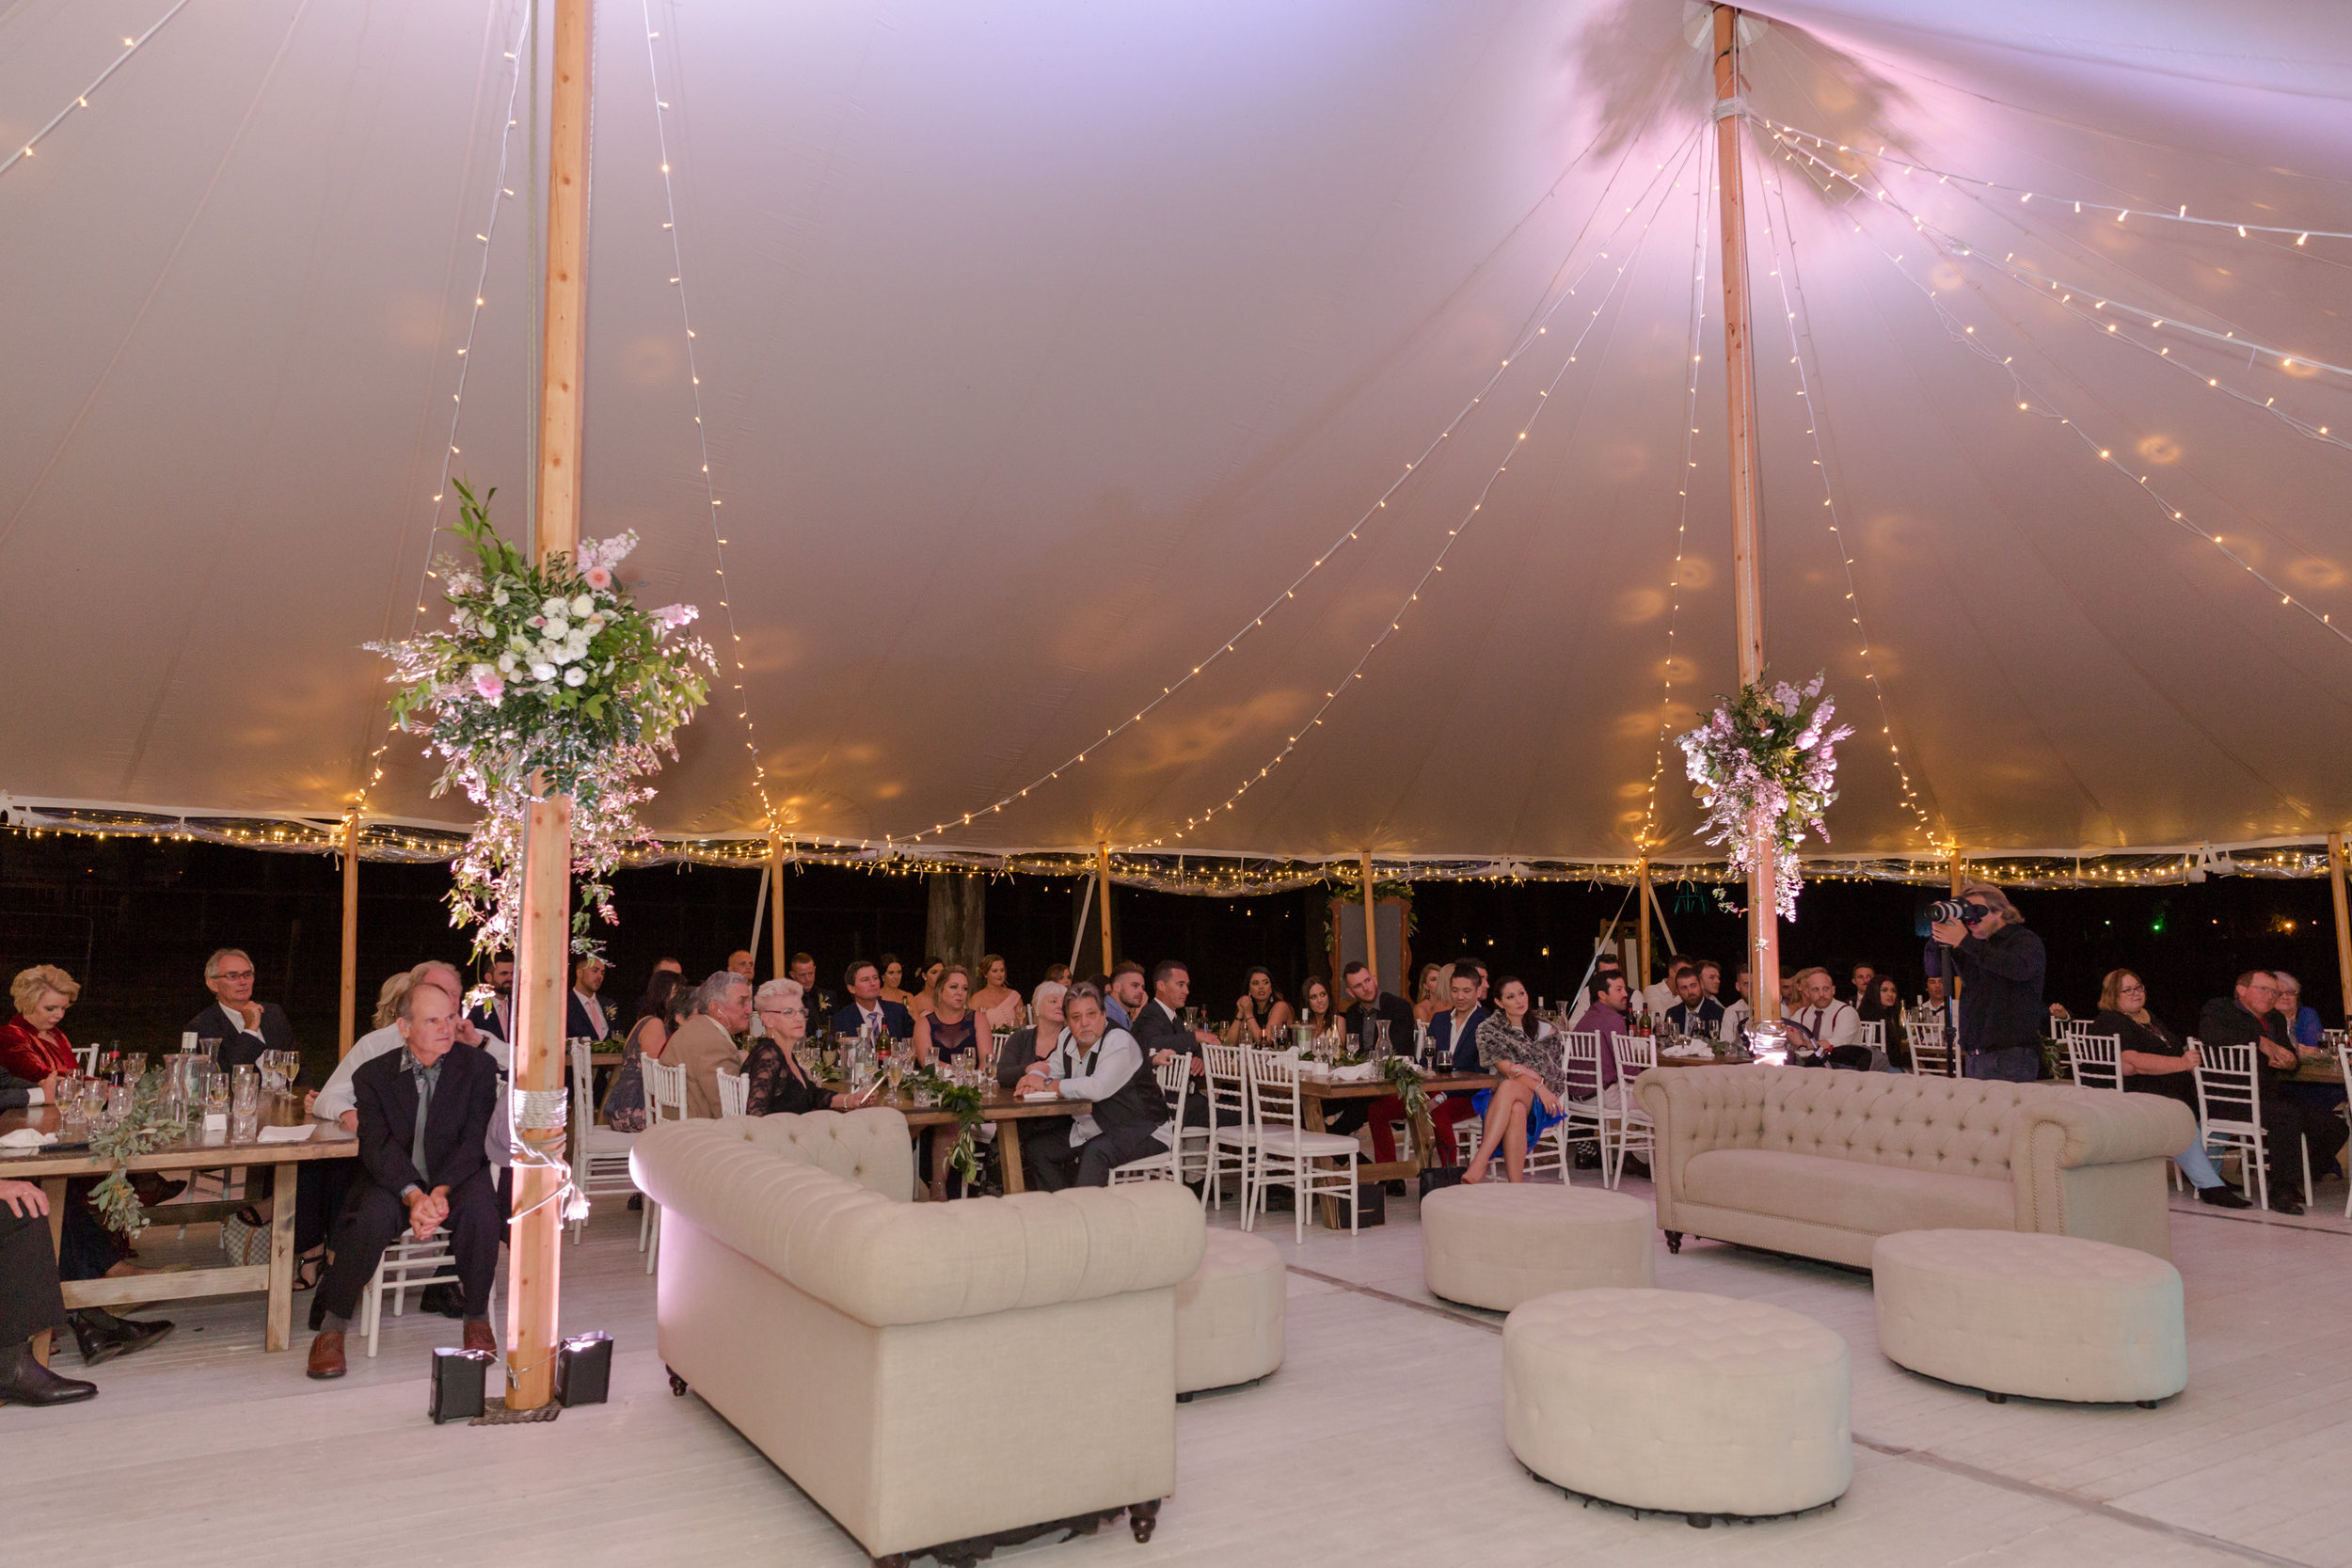 mobile-bar-service-hire-gold-coast-wedding-gathering-events